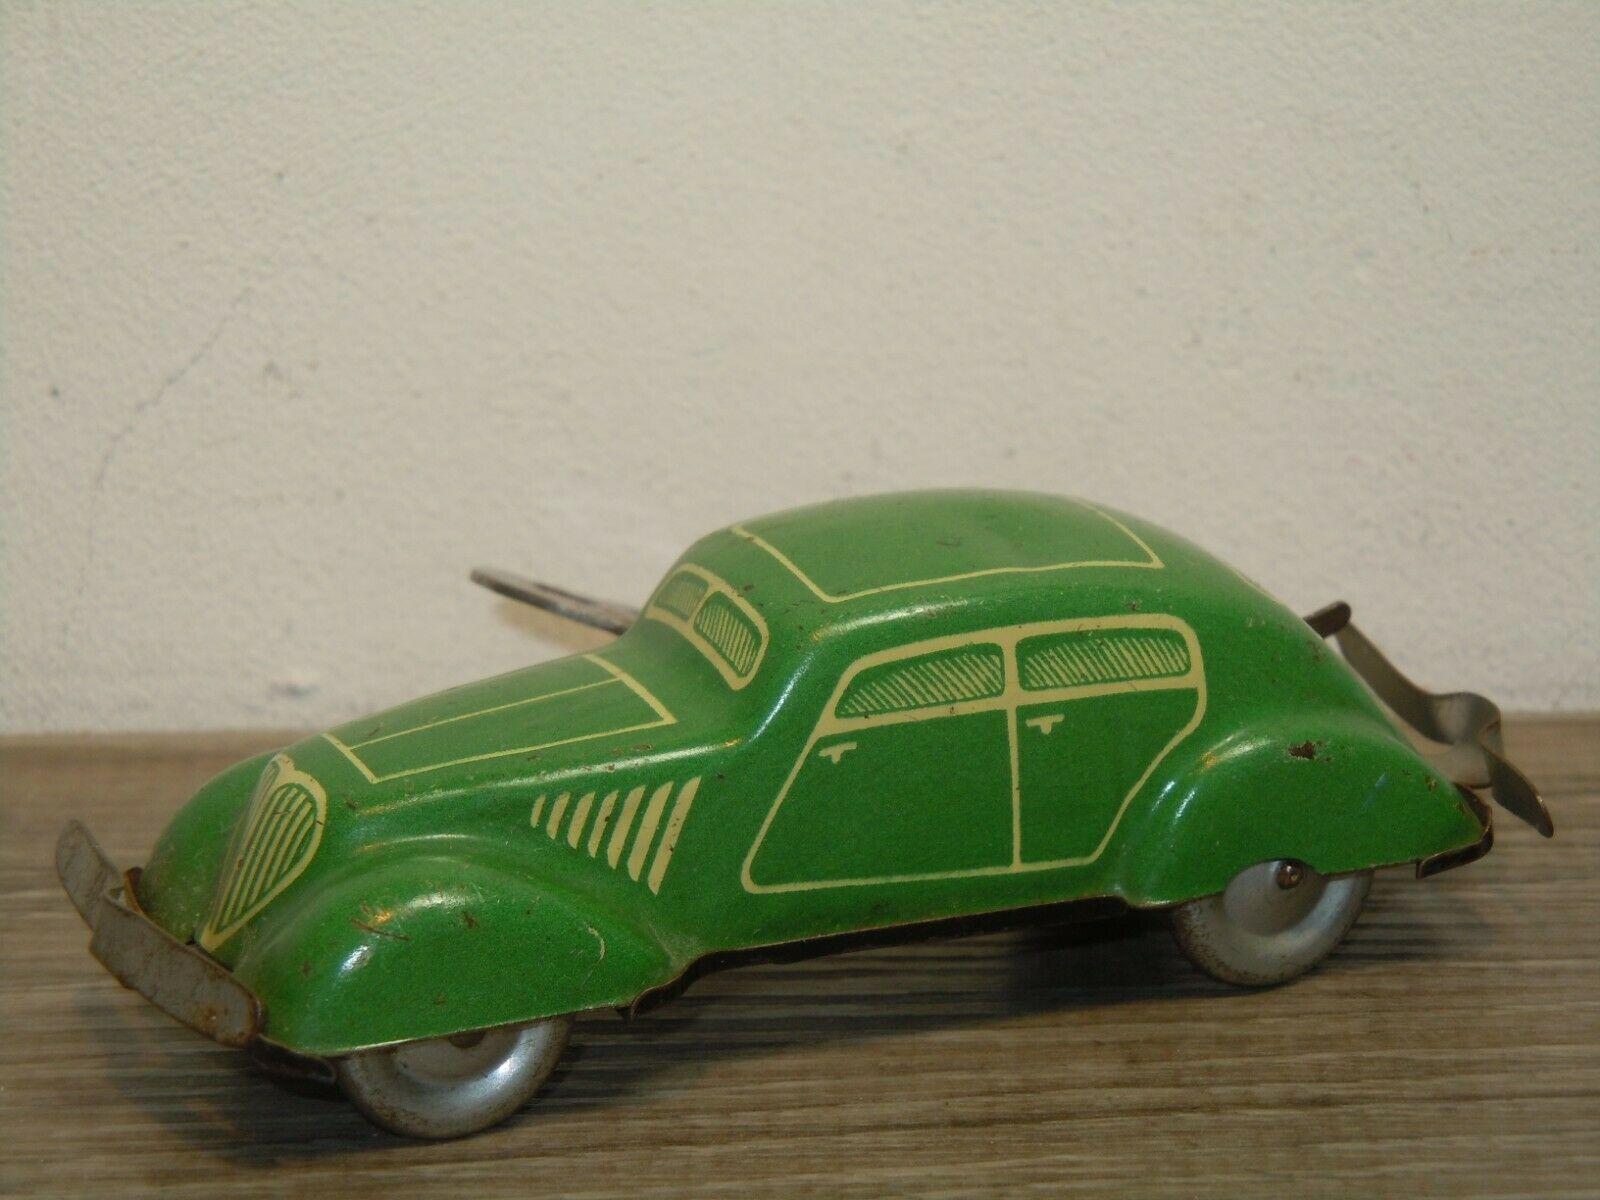 Tinplate Saloon Car - Made in Germany US Zone 38221